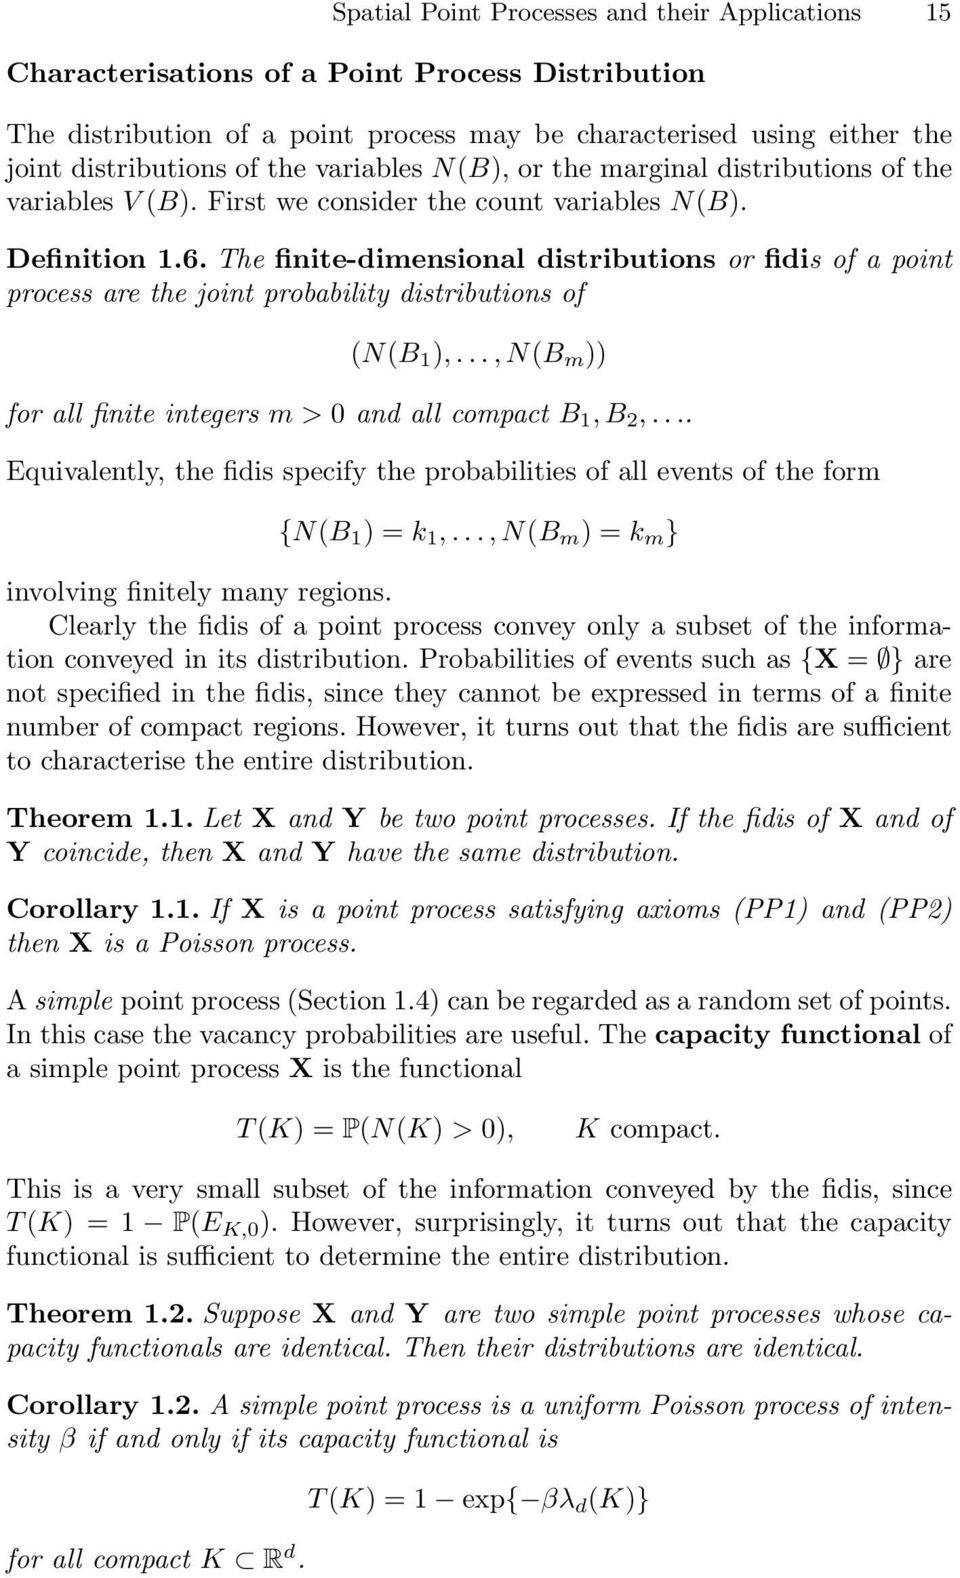 The finite-dimensional distributions or fidis of a point process are the joint probability distributions of (N(B 1 ),...,N(B m )) for all finite integers m>0 and all compact B 1,B 2,.